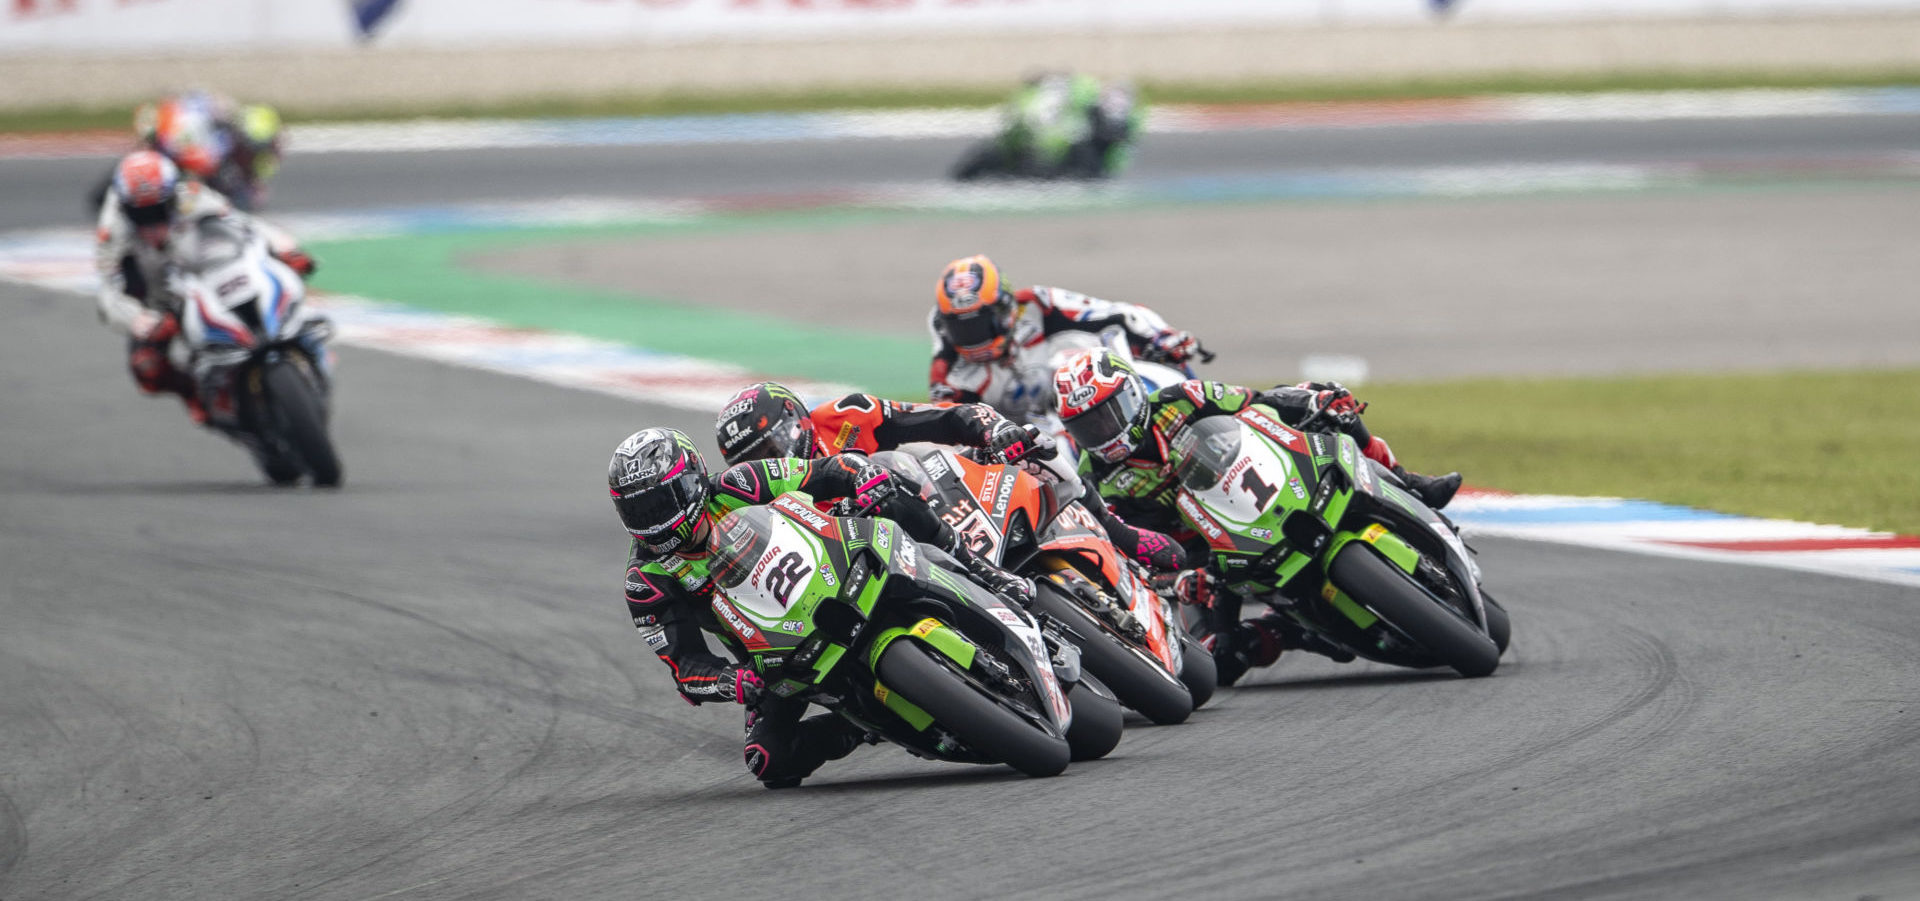 Alex Lowes (22) leads Scott Redding (behind Lowes), Jonathan Rea (1), Michael van der Mark (behind Rea), and the rest of the World Superbike field at Assen. Photo courtesy Kawasaki.